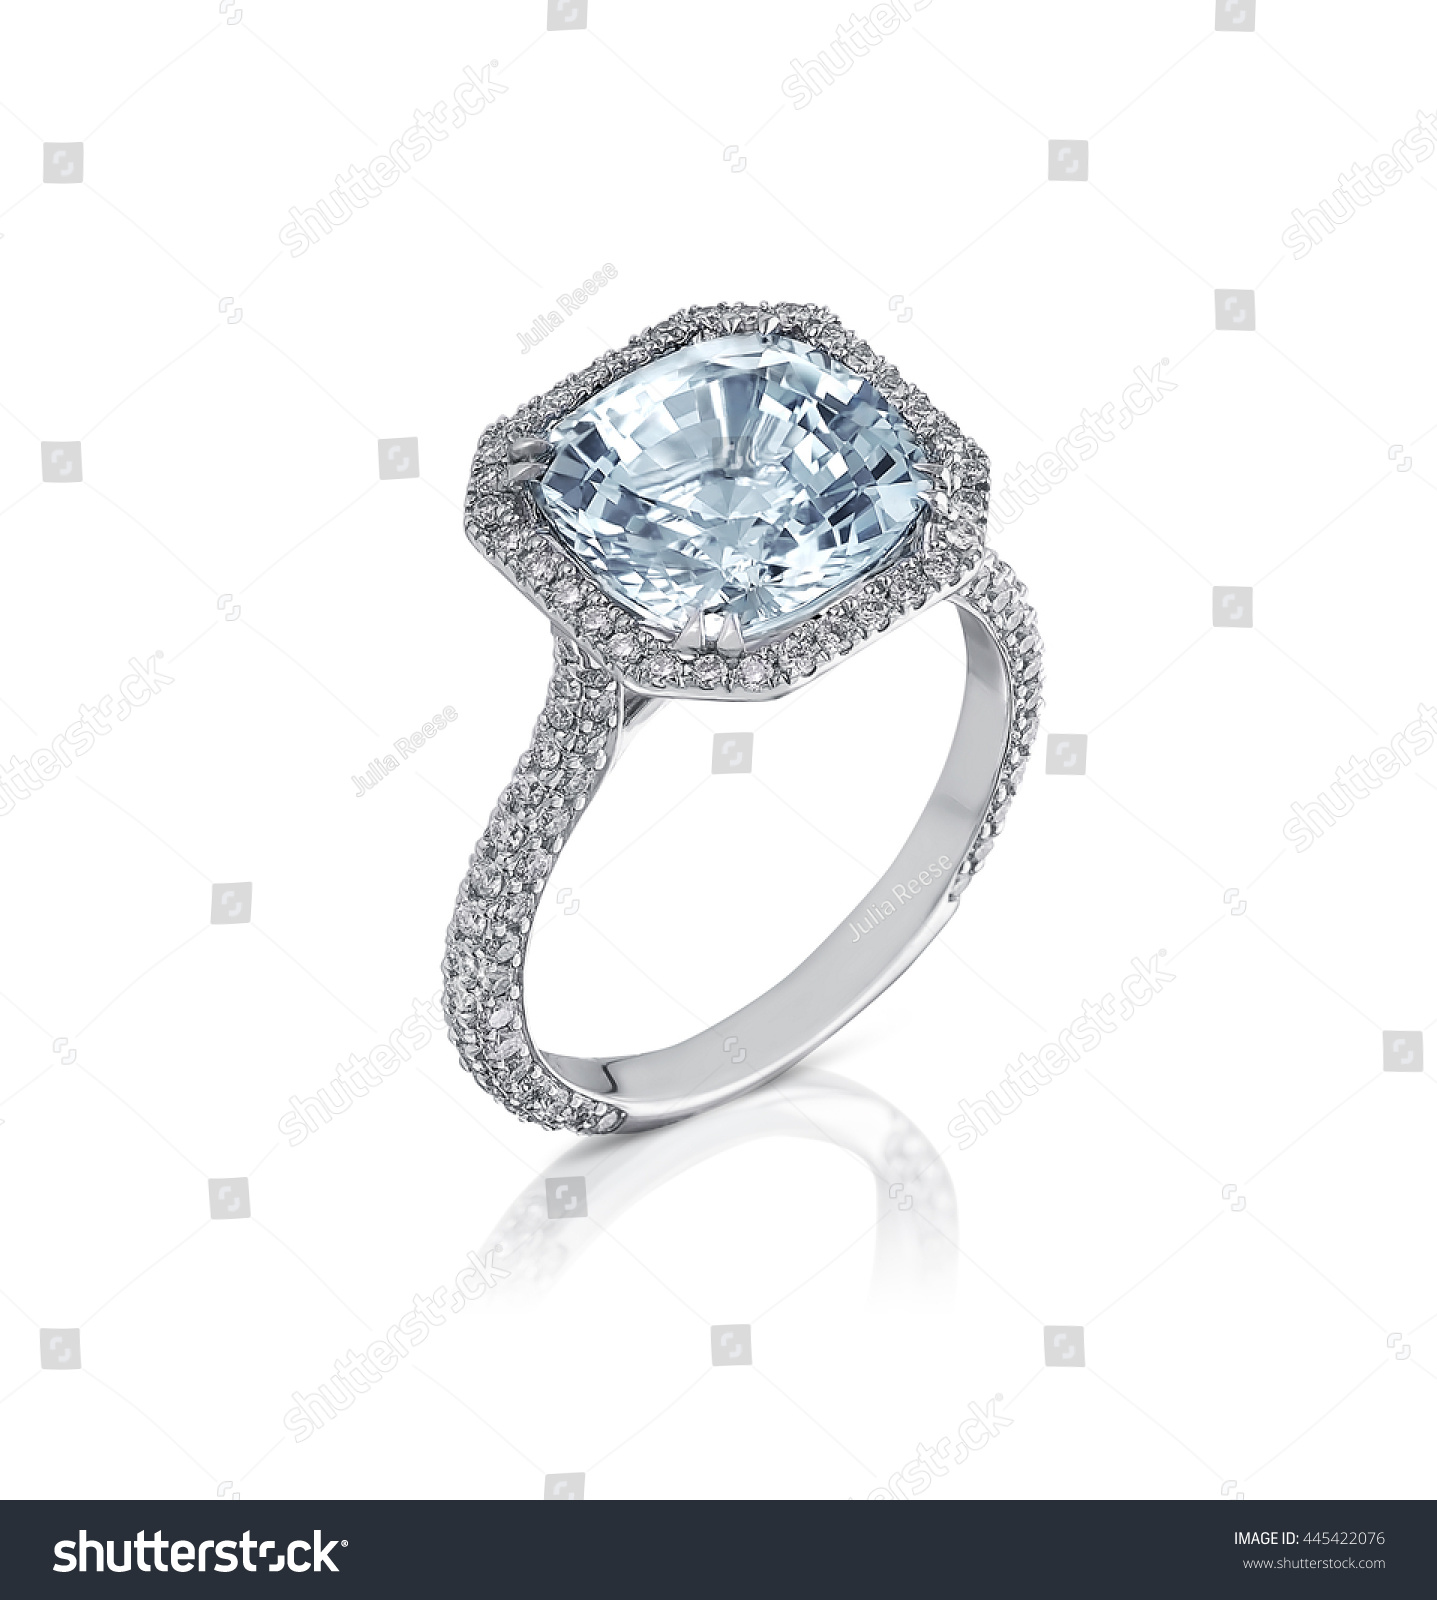 review engagement diamonds trendy as rings wedding the jfewgme of big biggest one diamond promise largest ring